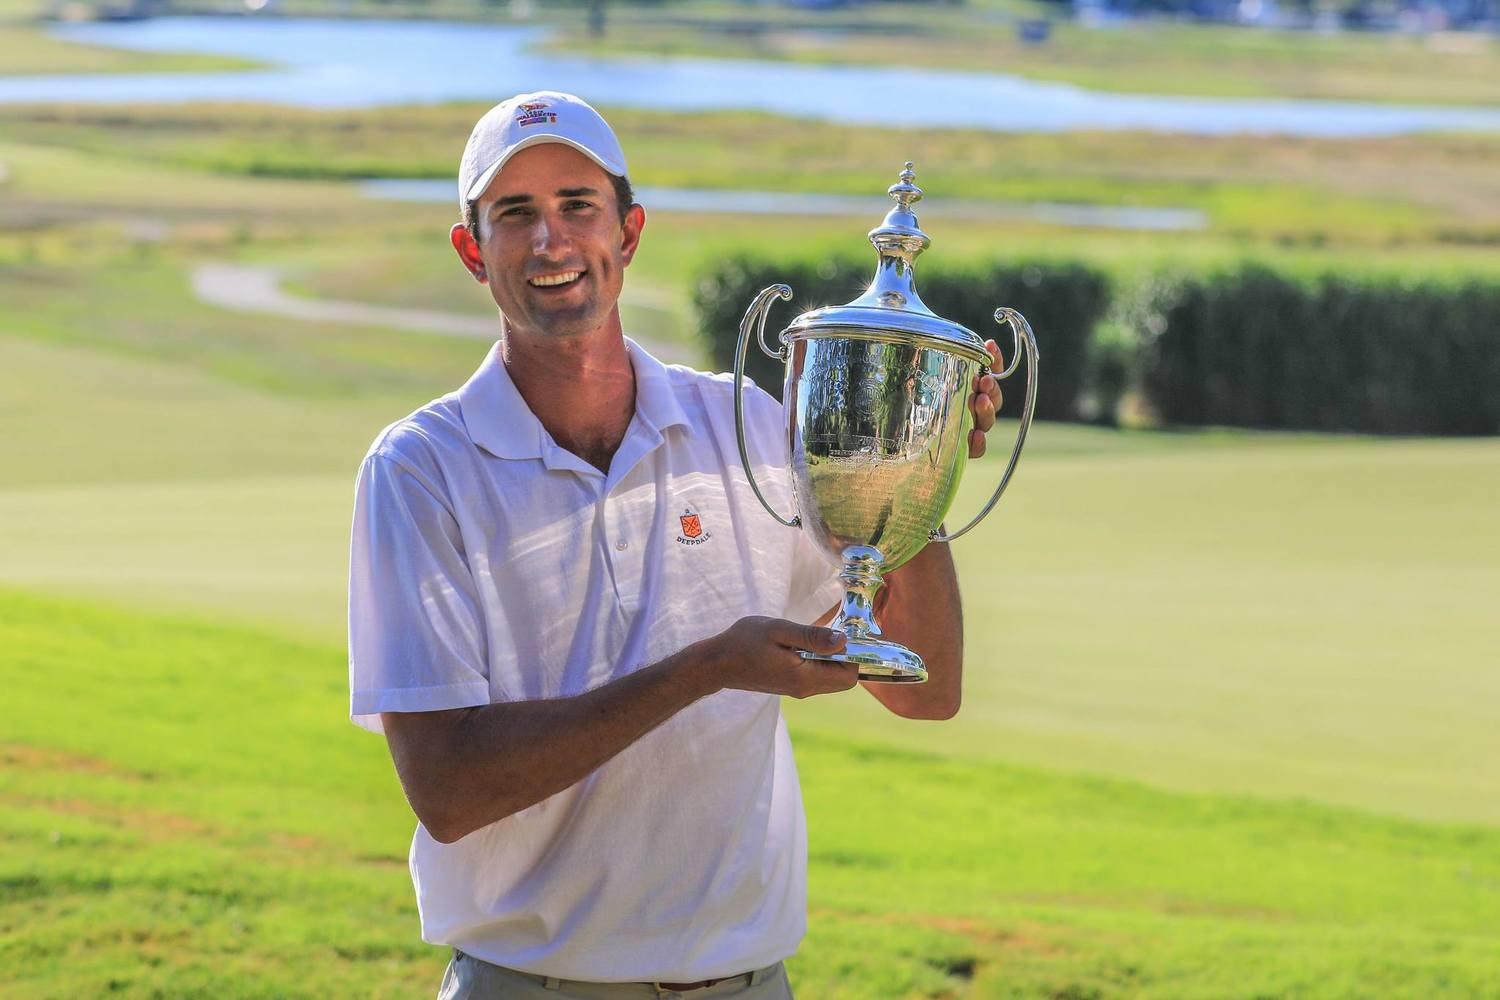 Stewart Hagestad won the U.S. Mid-Amateur.